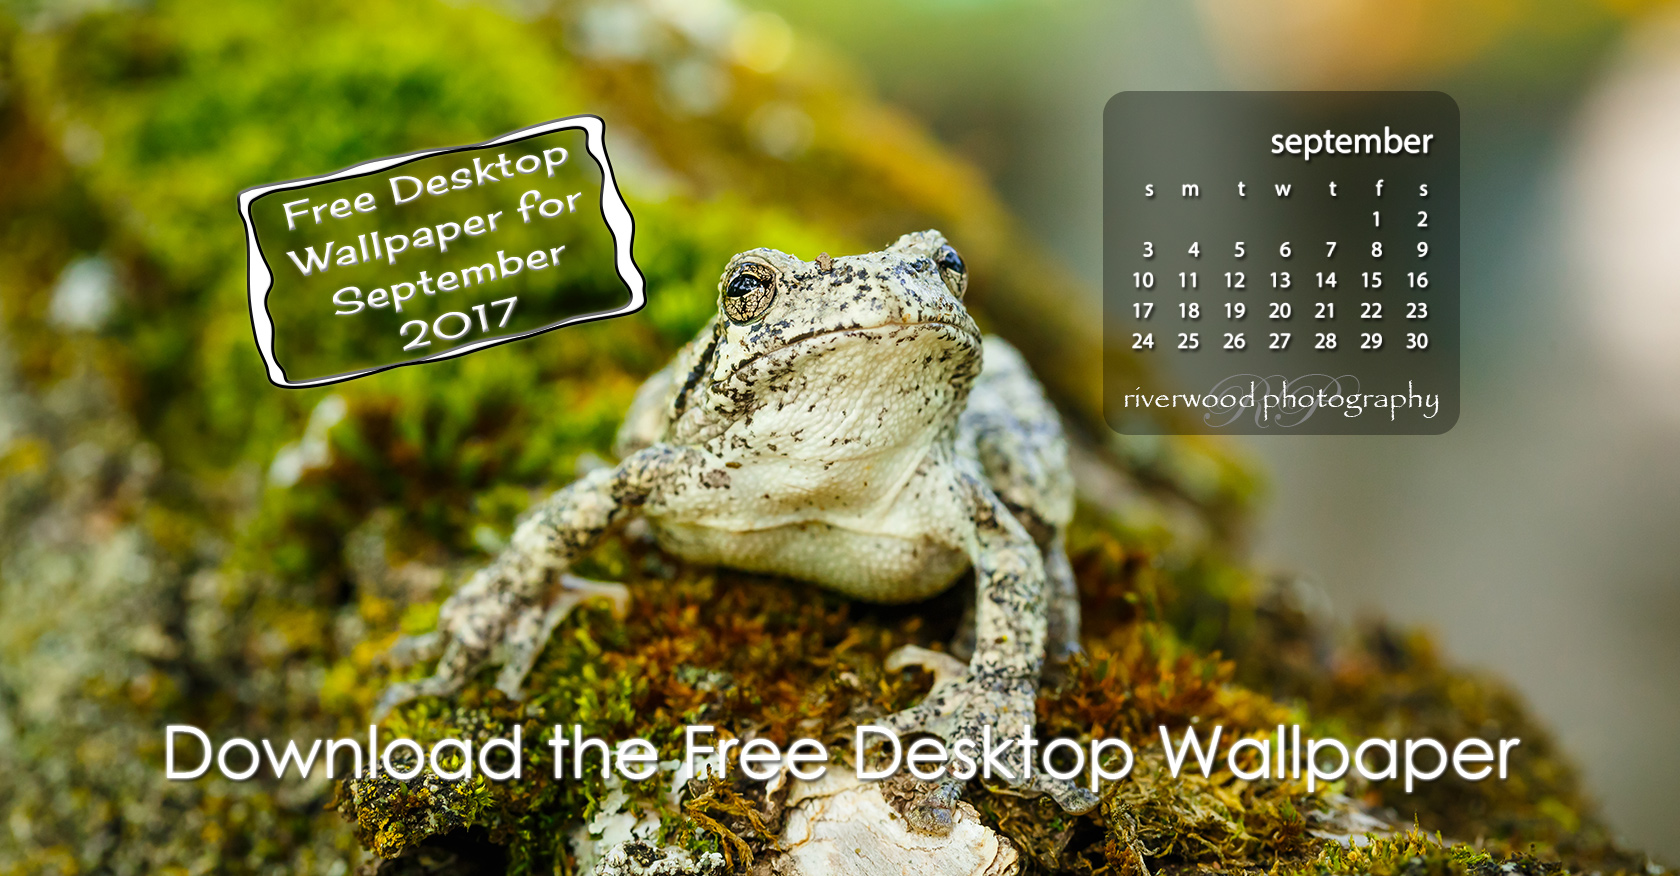 Free Desktop Wallpaper for September 2017